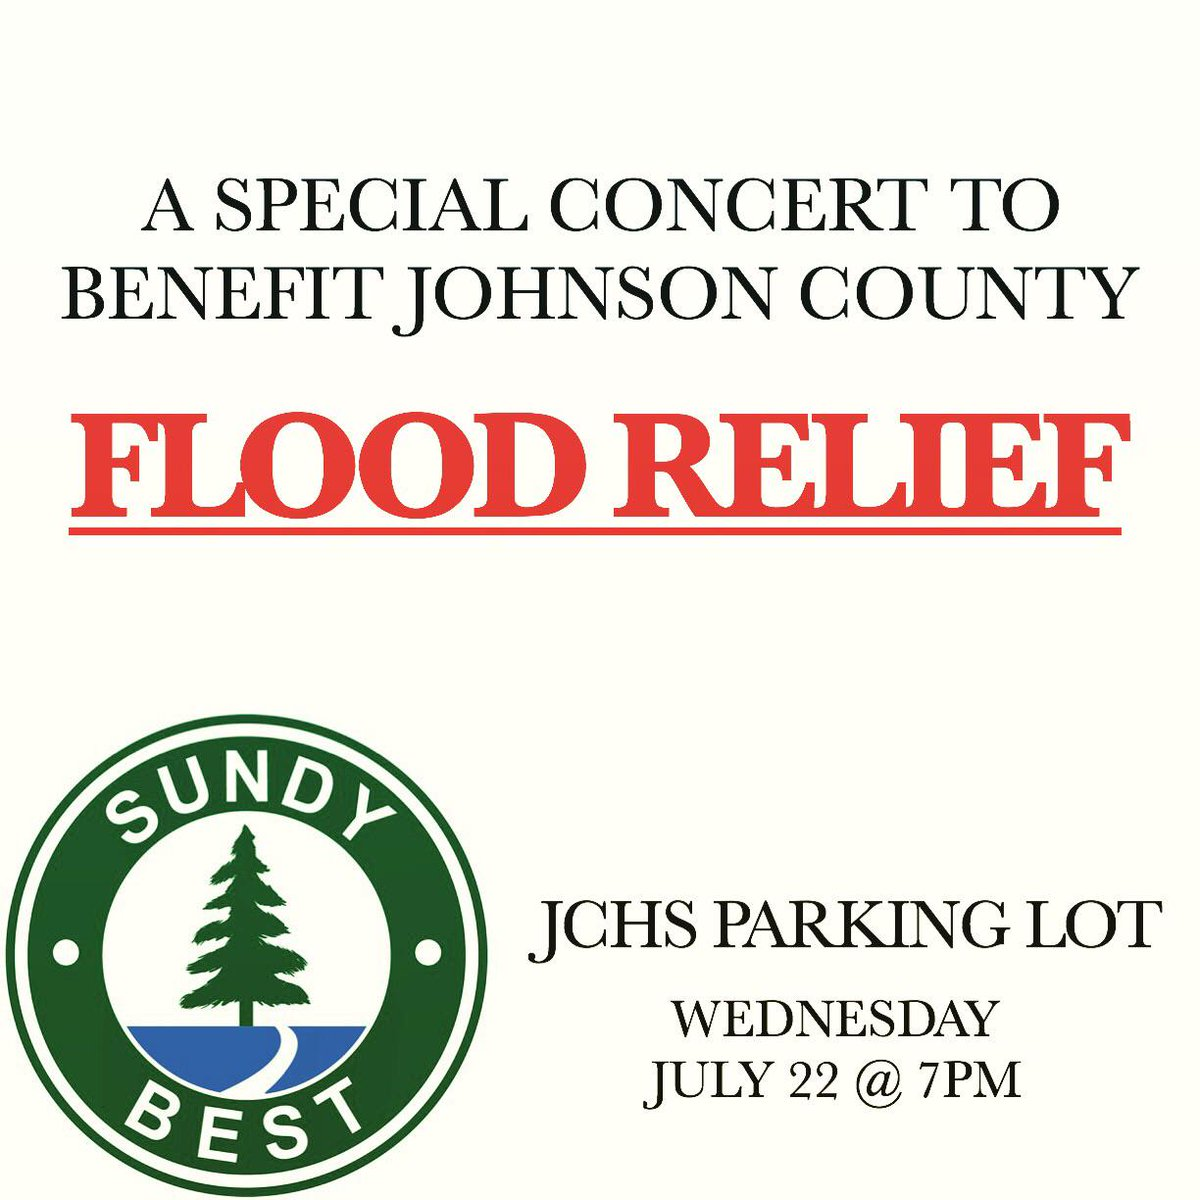 WED JULY 22  free show to benefit JC flood relief  all donations accepted at entrance  #kinfolk ☀️ http://t.co/d3a9PpFrJk